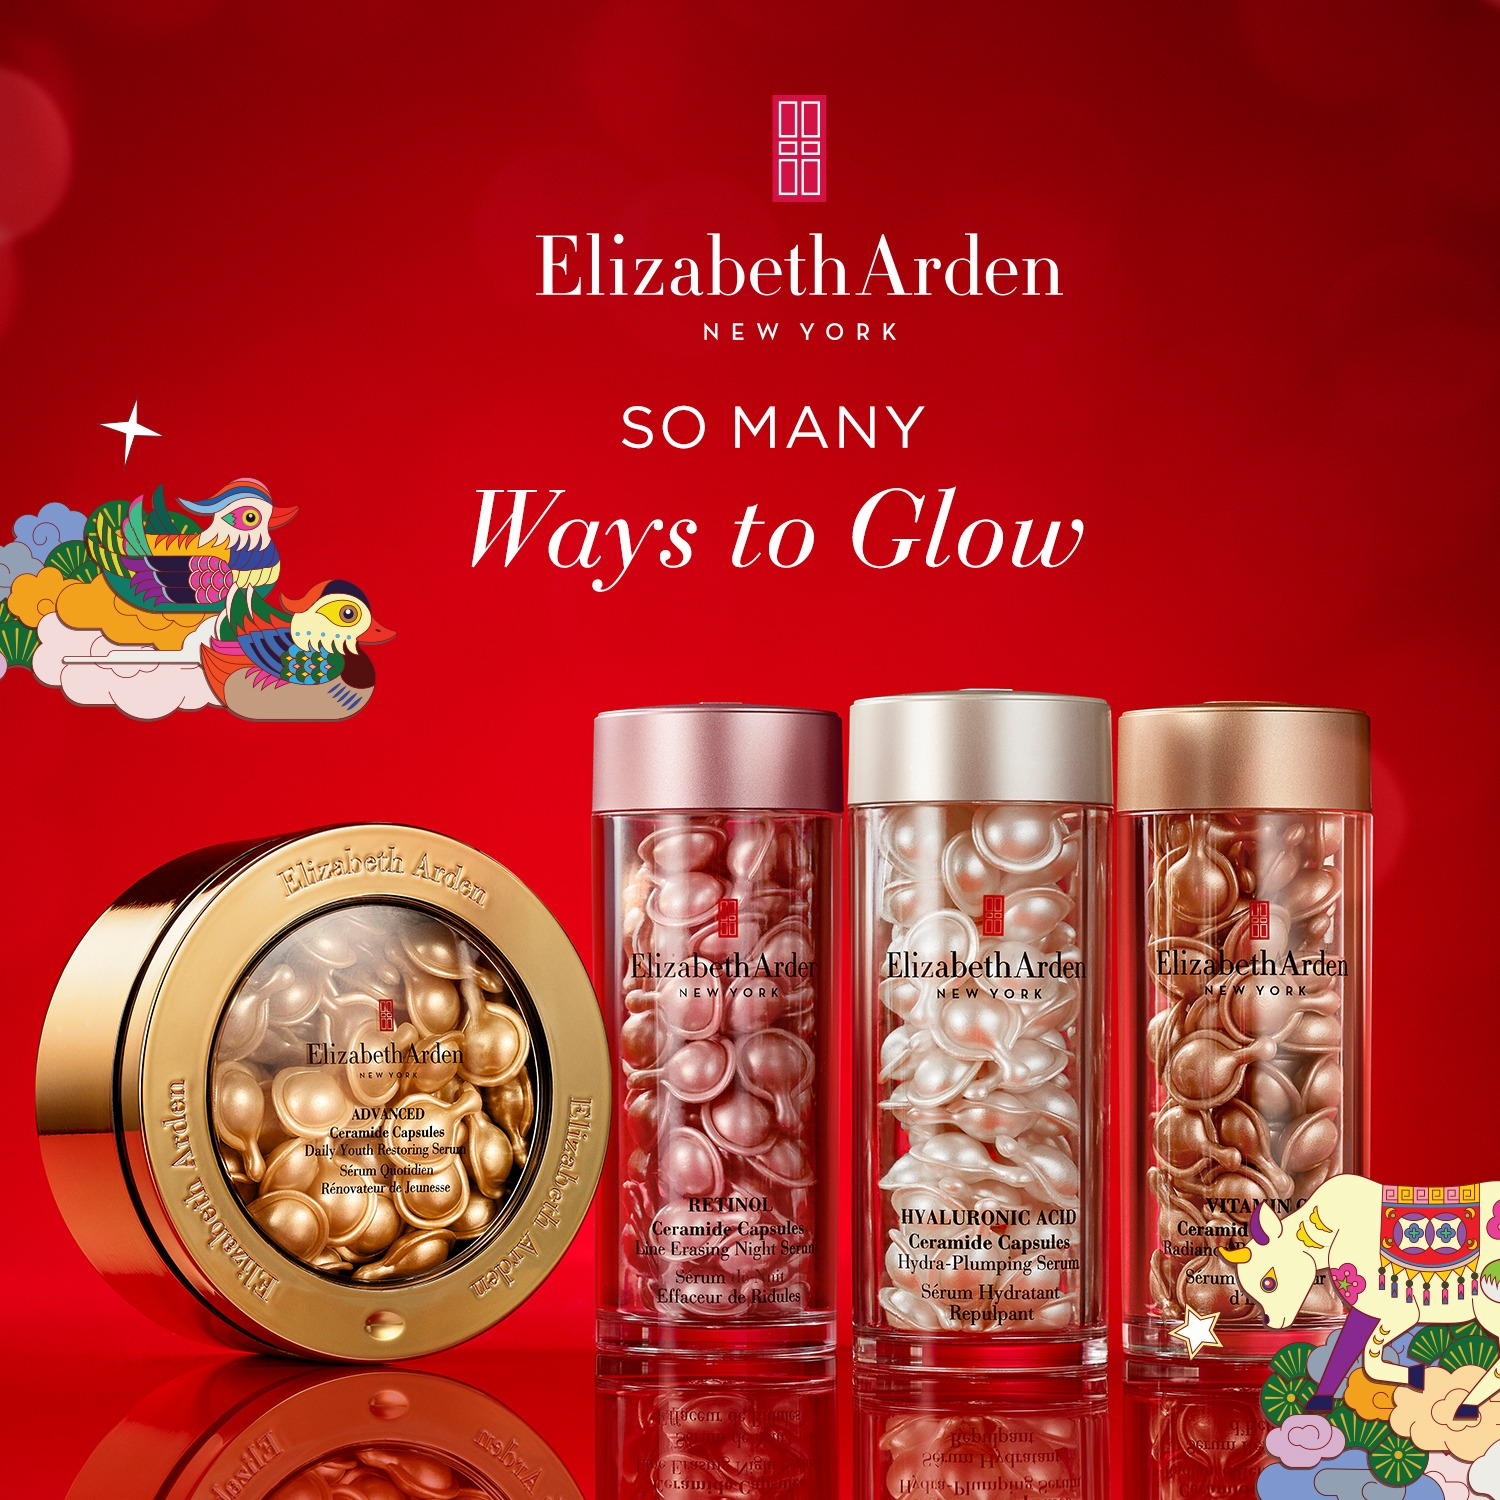 Elizabeth Arden: Up to 35% OFF+Free Gift